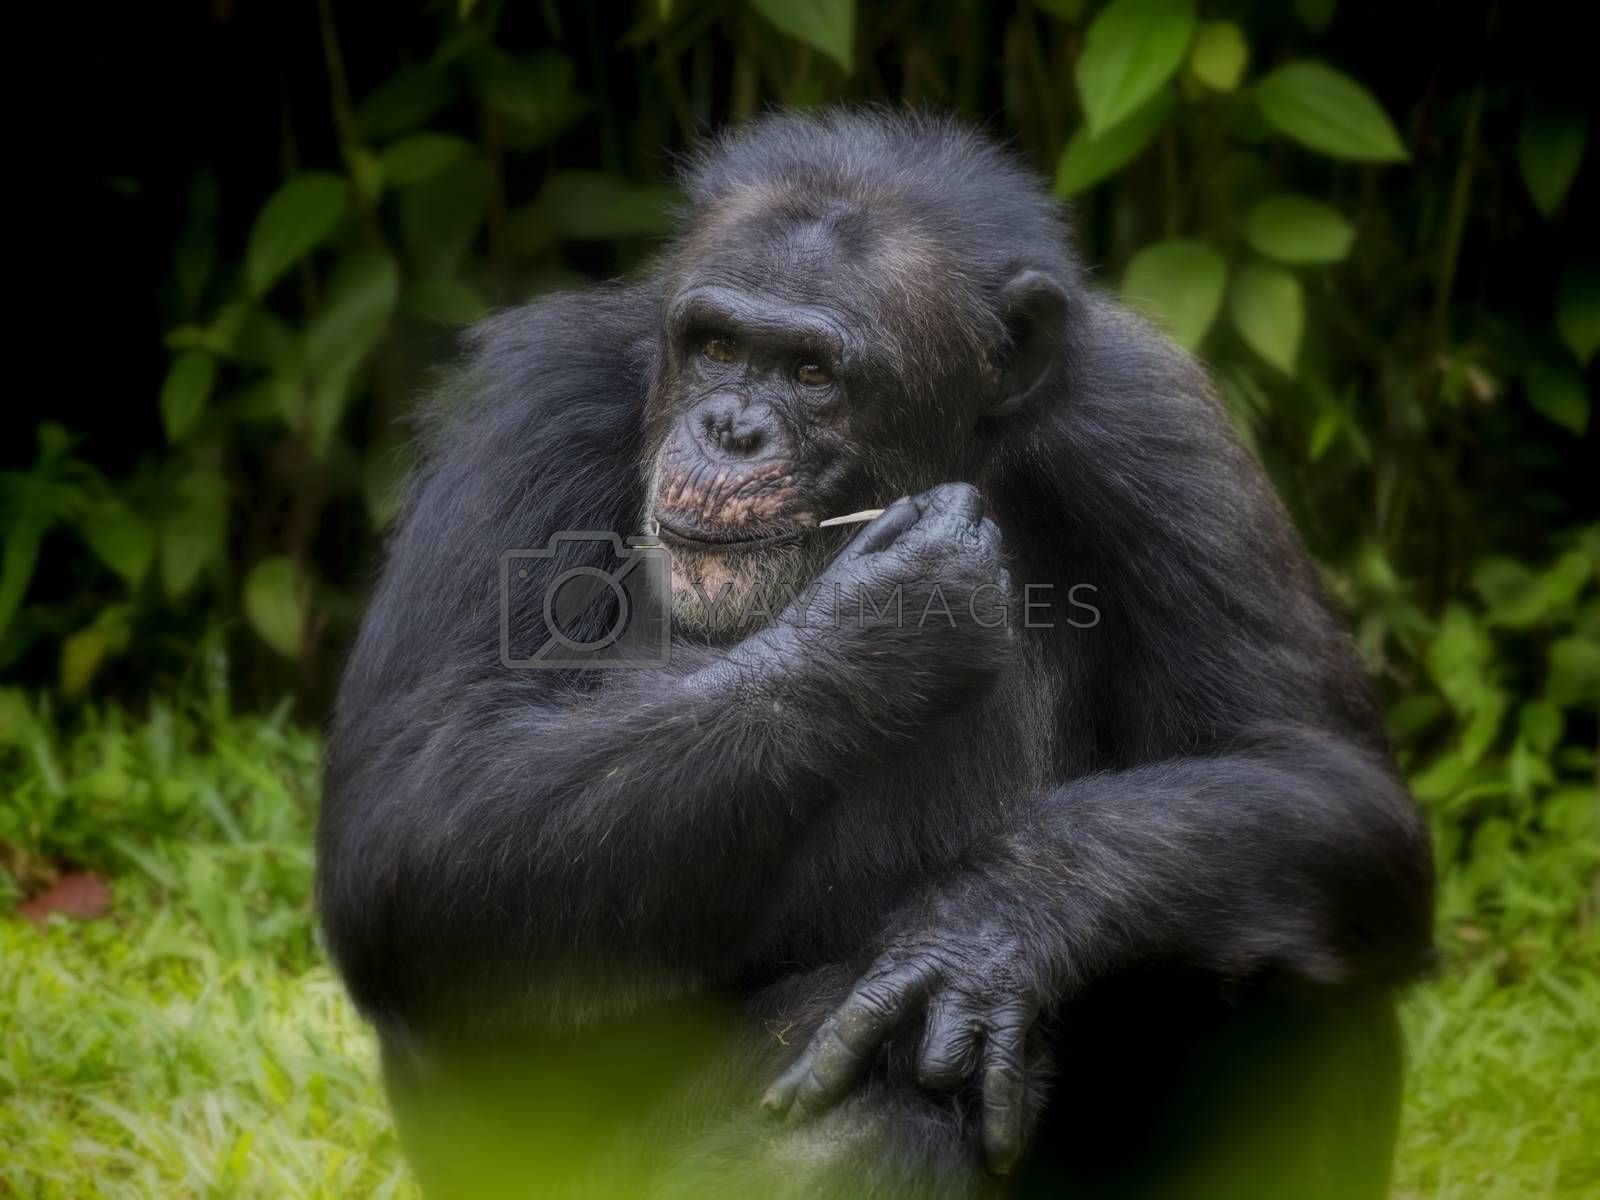 Royalty free image of Common Chimpanzee by kjorgen